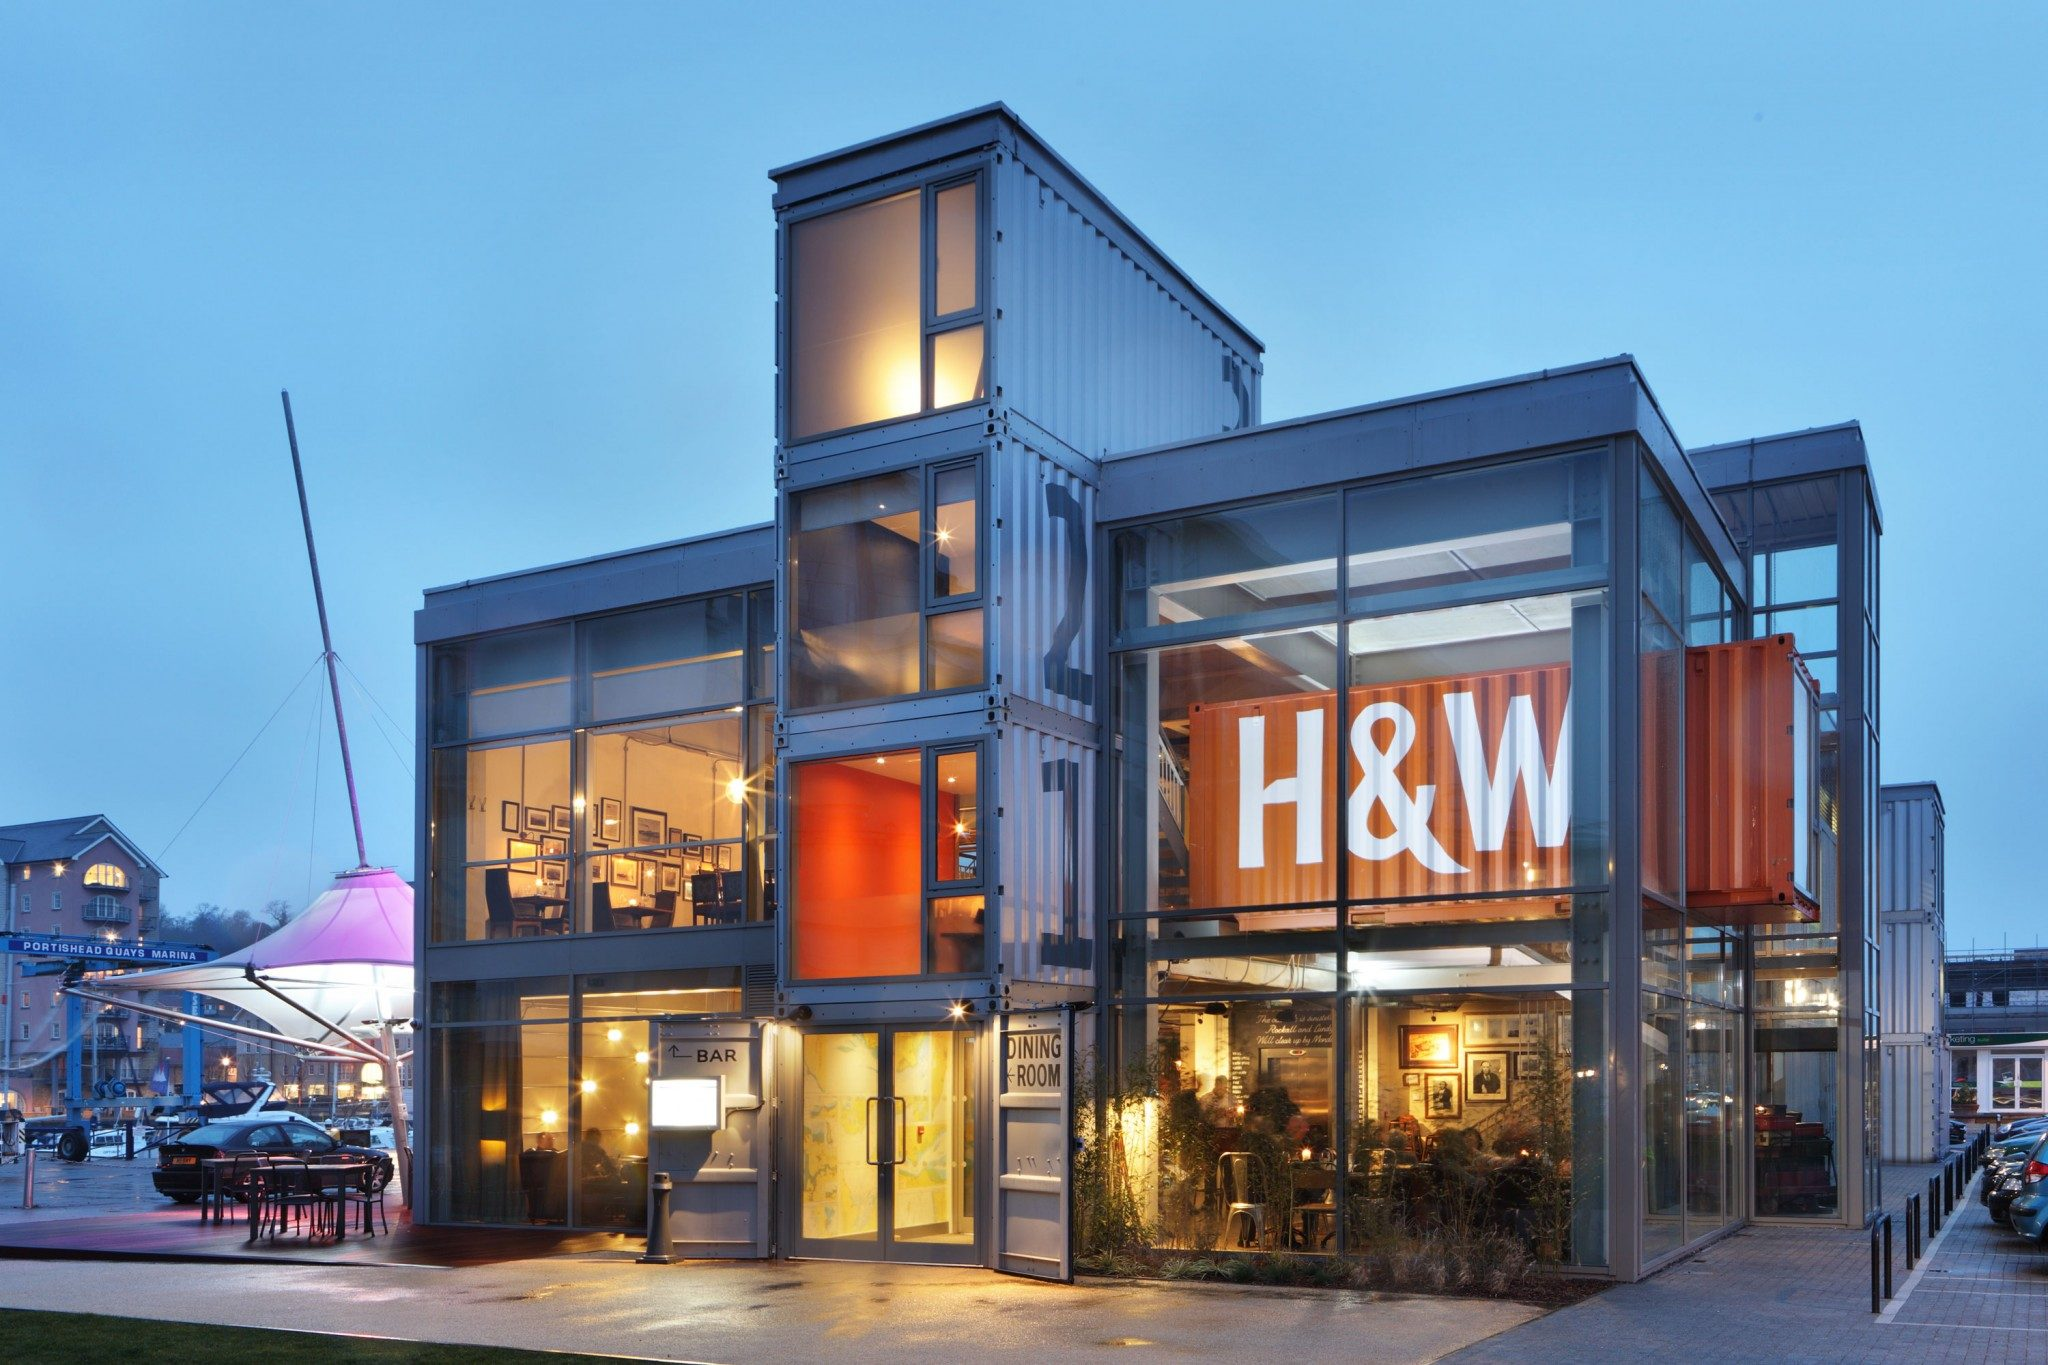 mackenzie wheeler are award winning new build pub and shipping container architects in shoreditch london